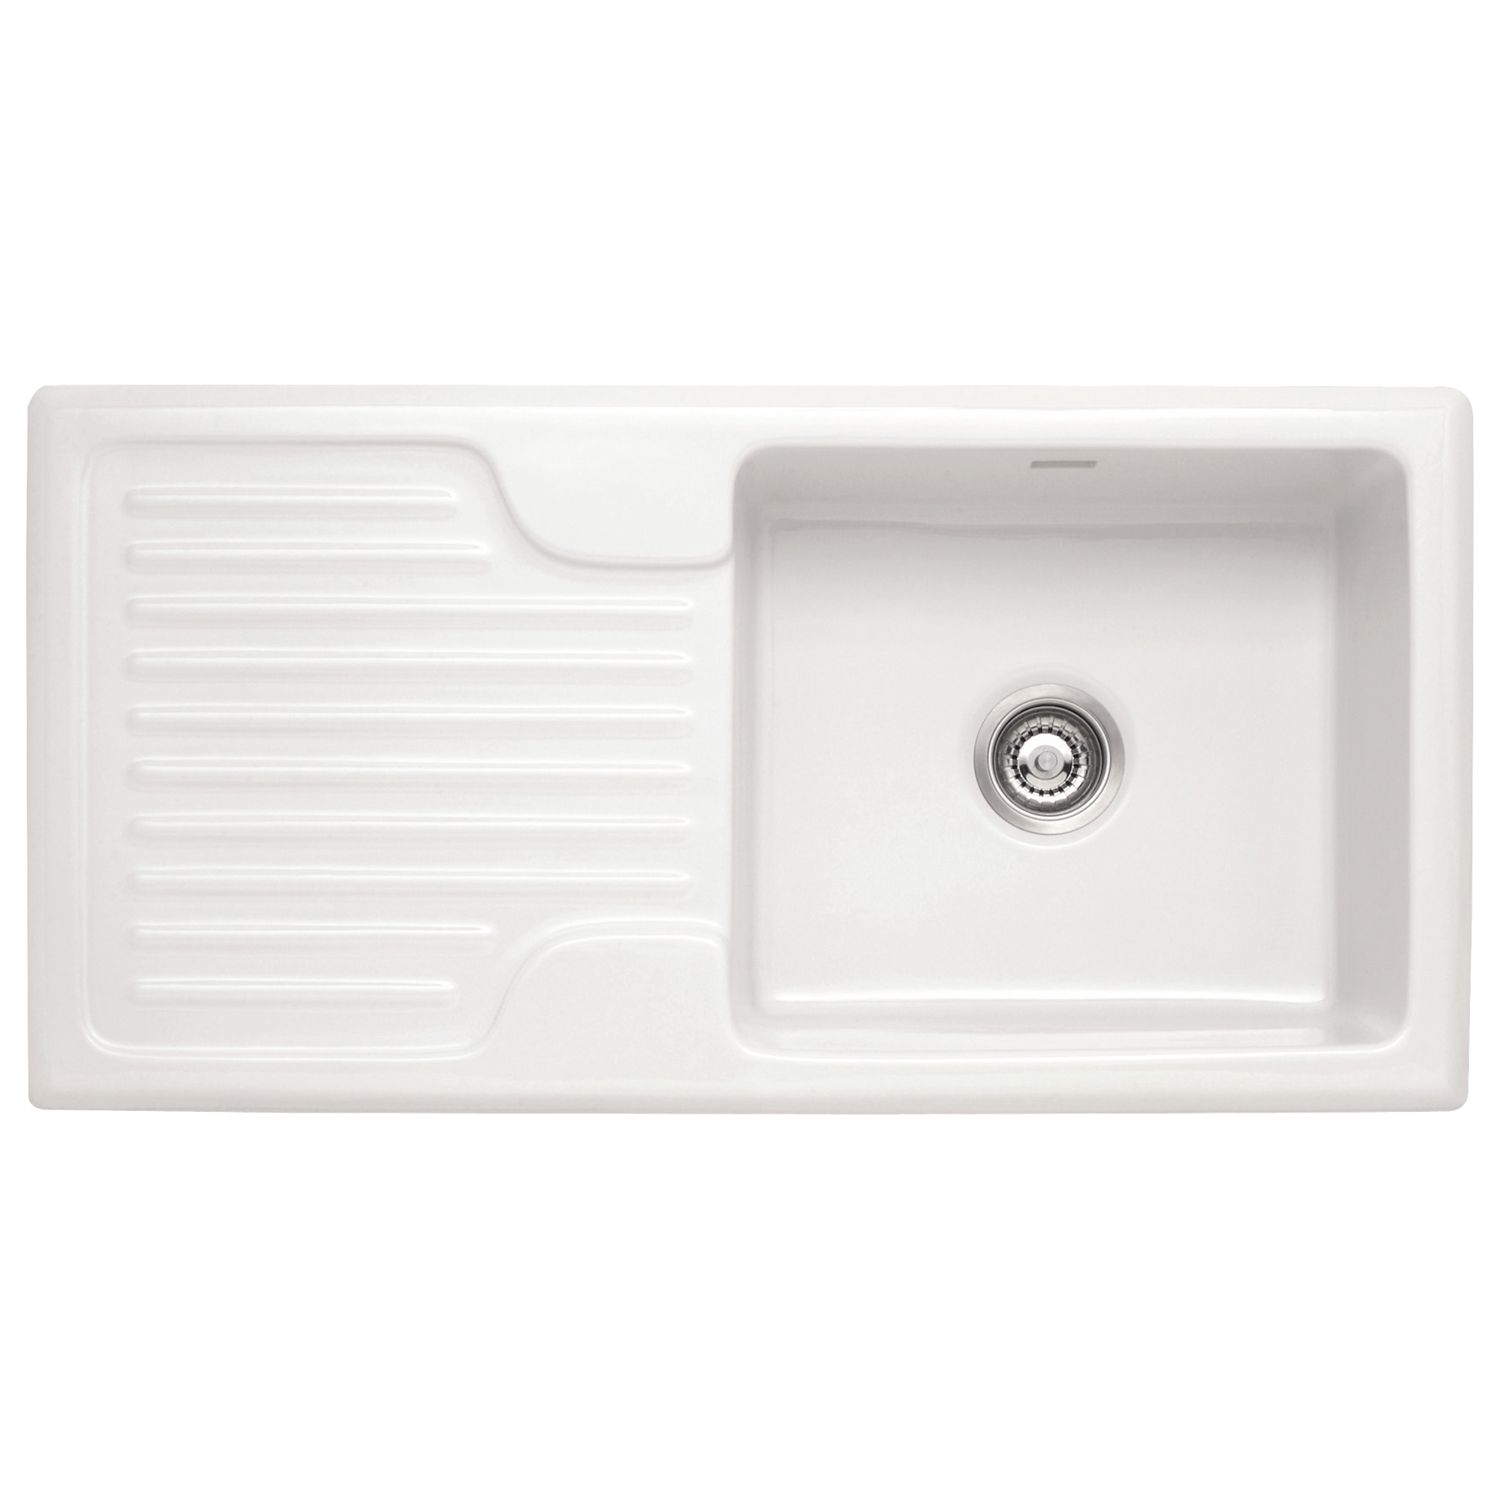 Franke Franke Galassia GAK 611 Single Bowl Sink, White